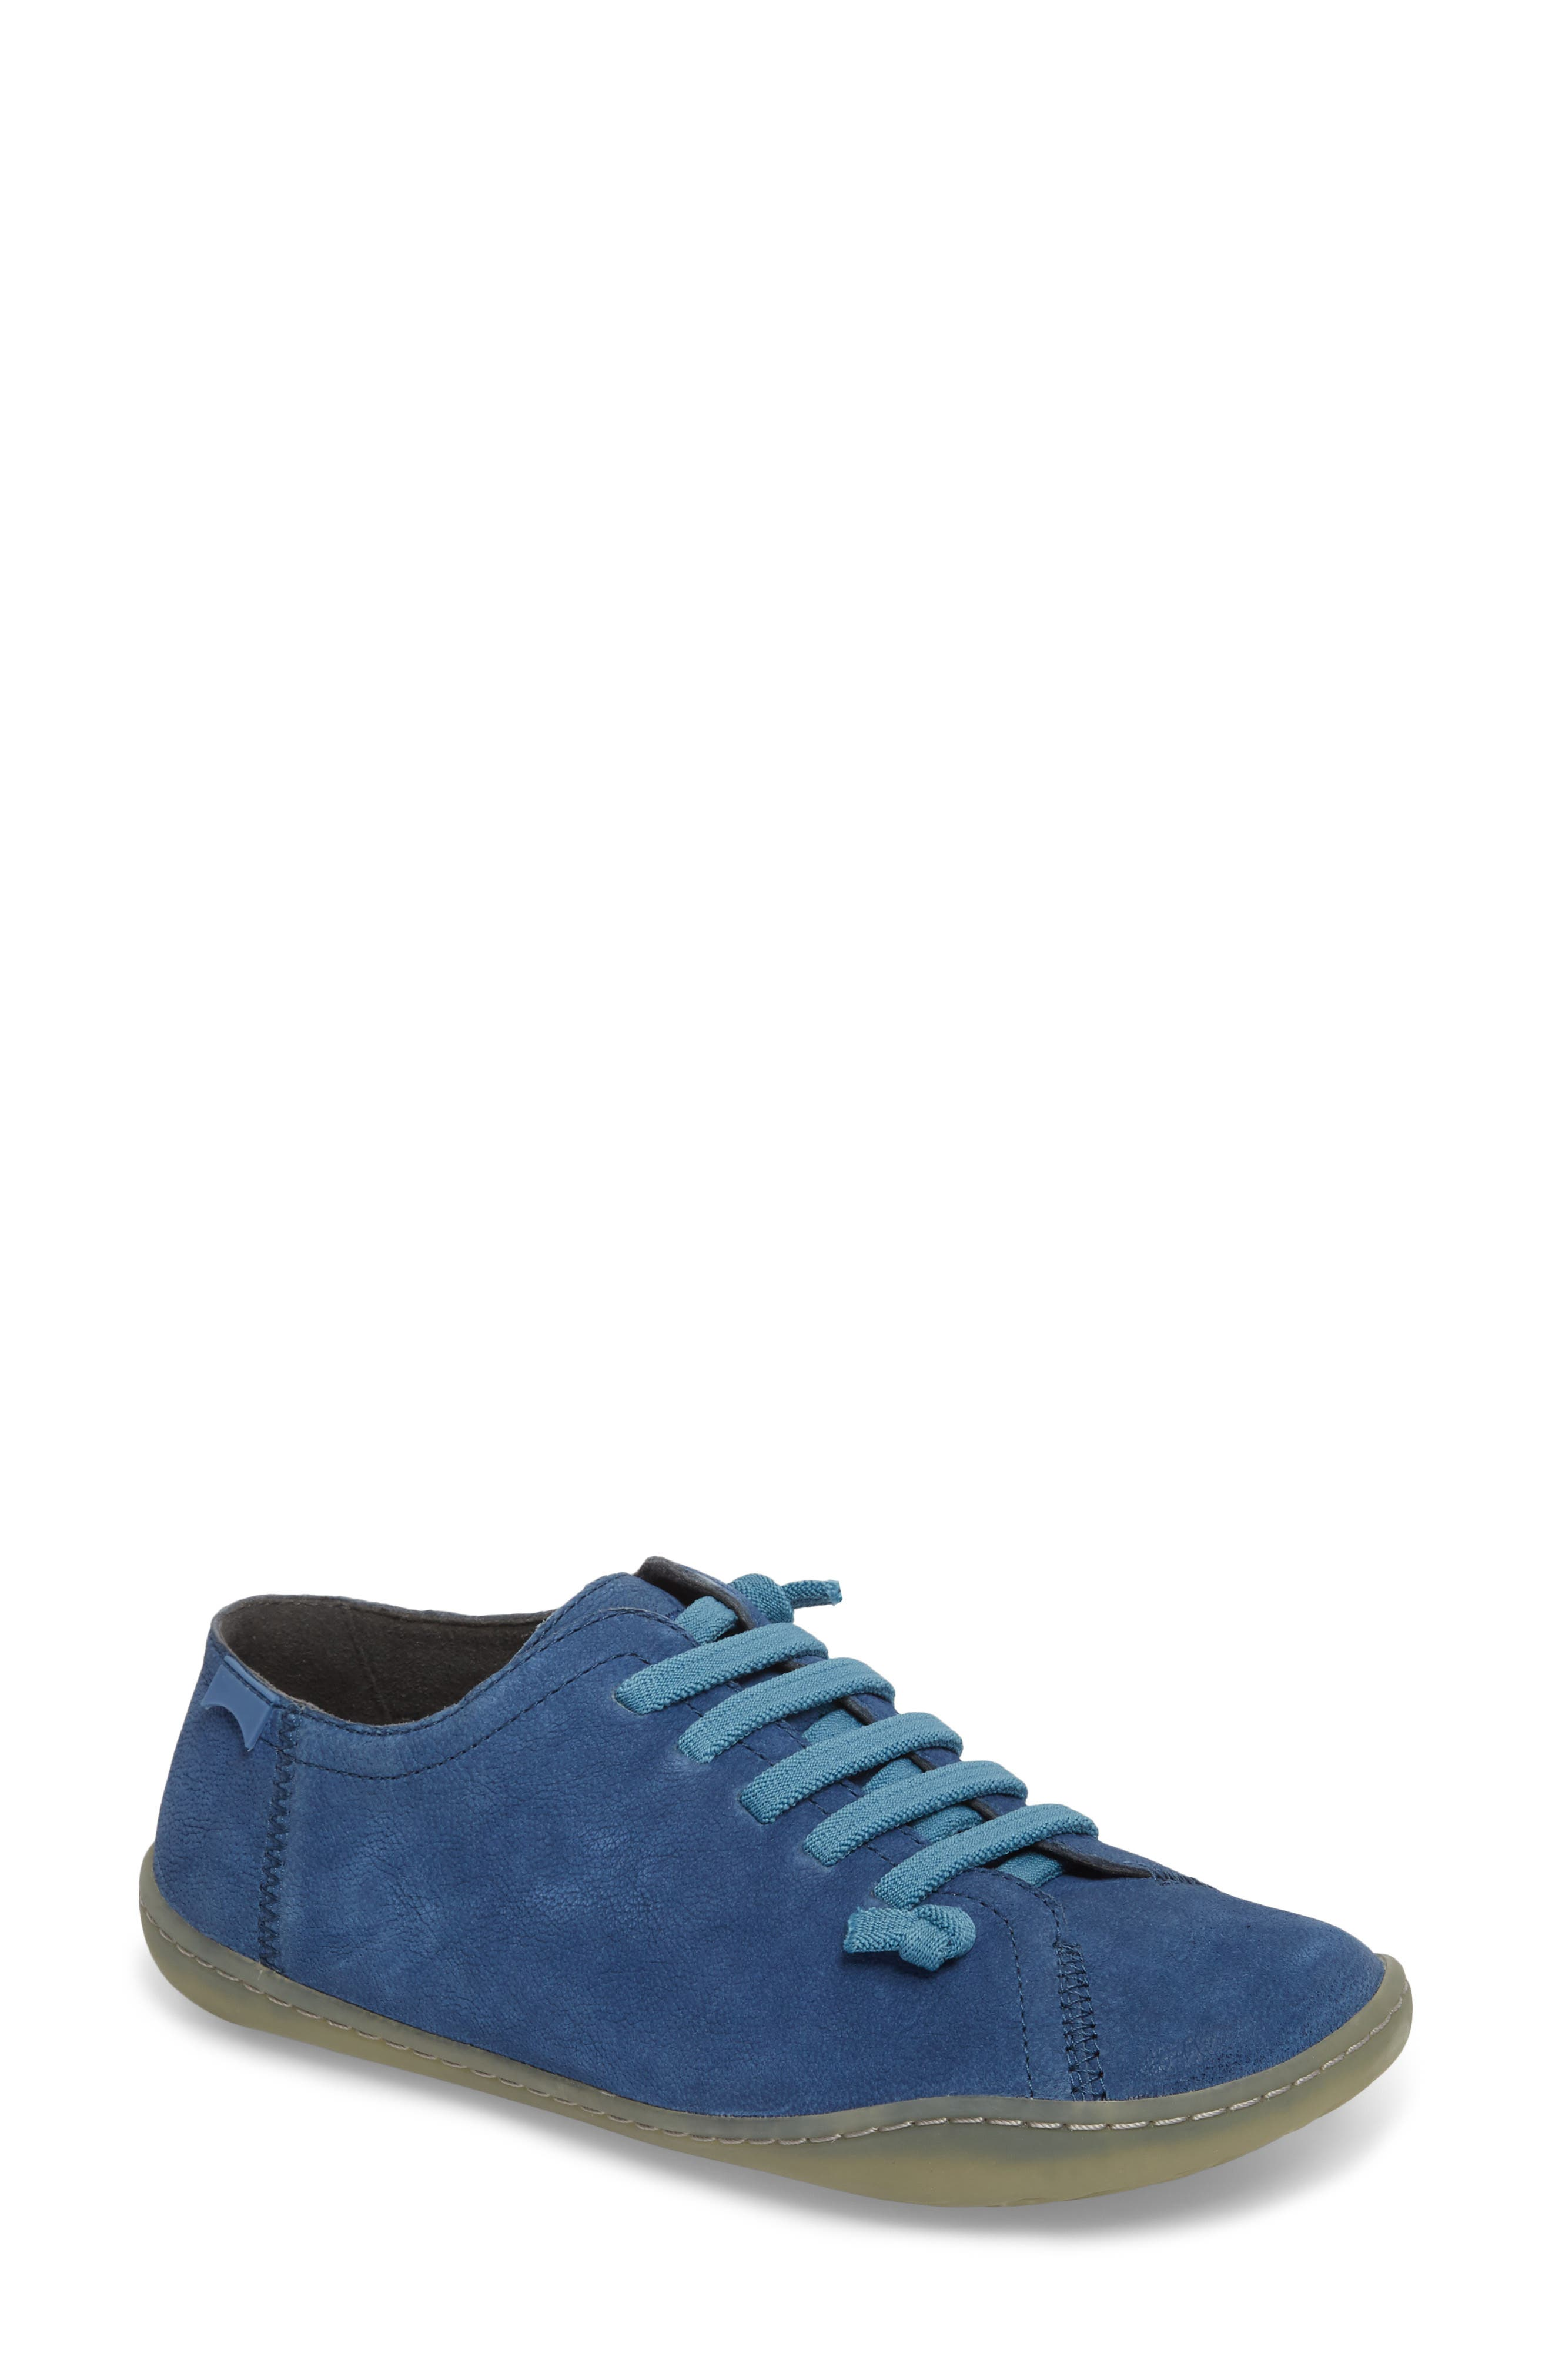 'Peu Cami' Leather Sneaker,                             Main thumbnail 1, color,                             420